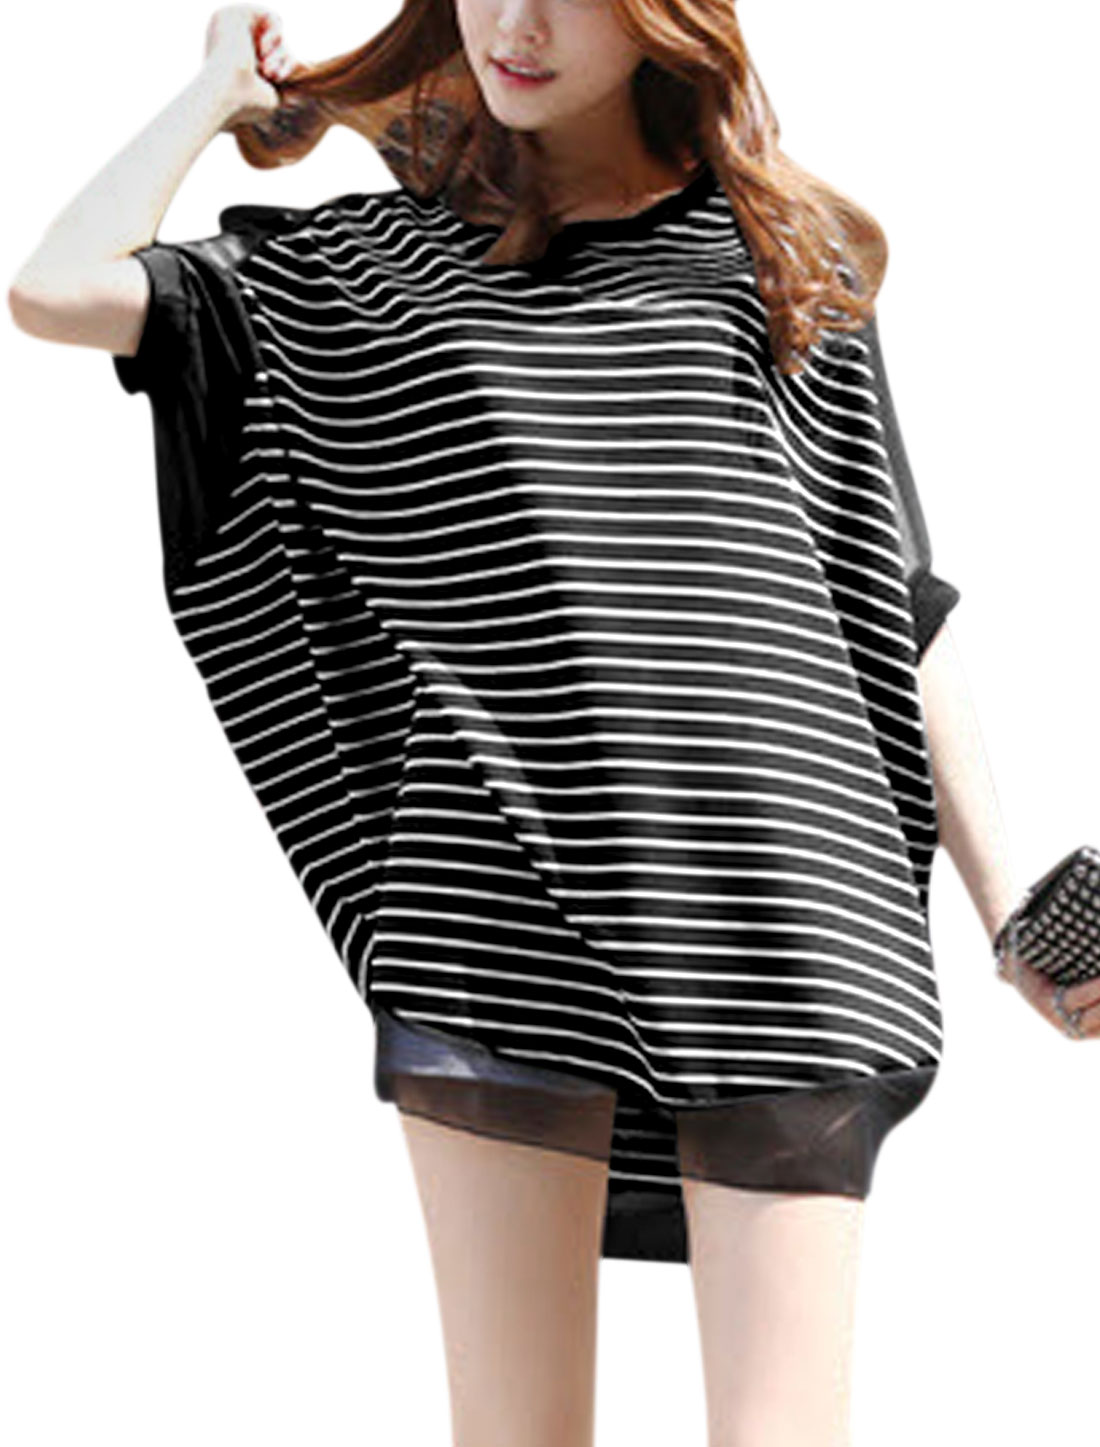 Women Chiffon-Patched Raglan Sleeve Stripes Loose Tunic Top Black S